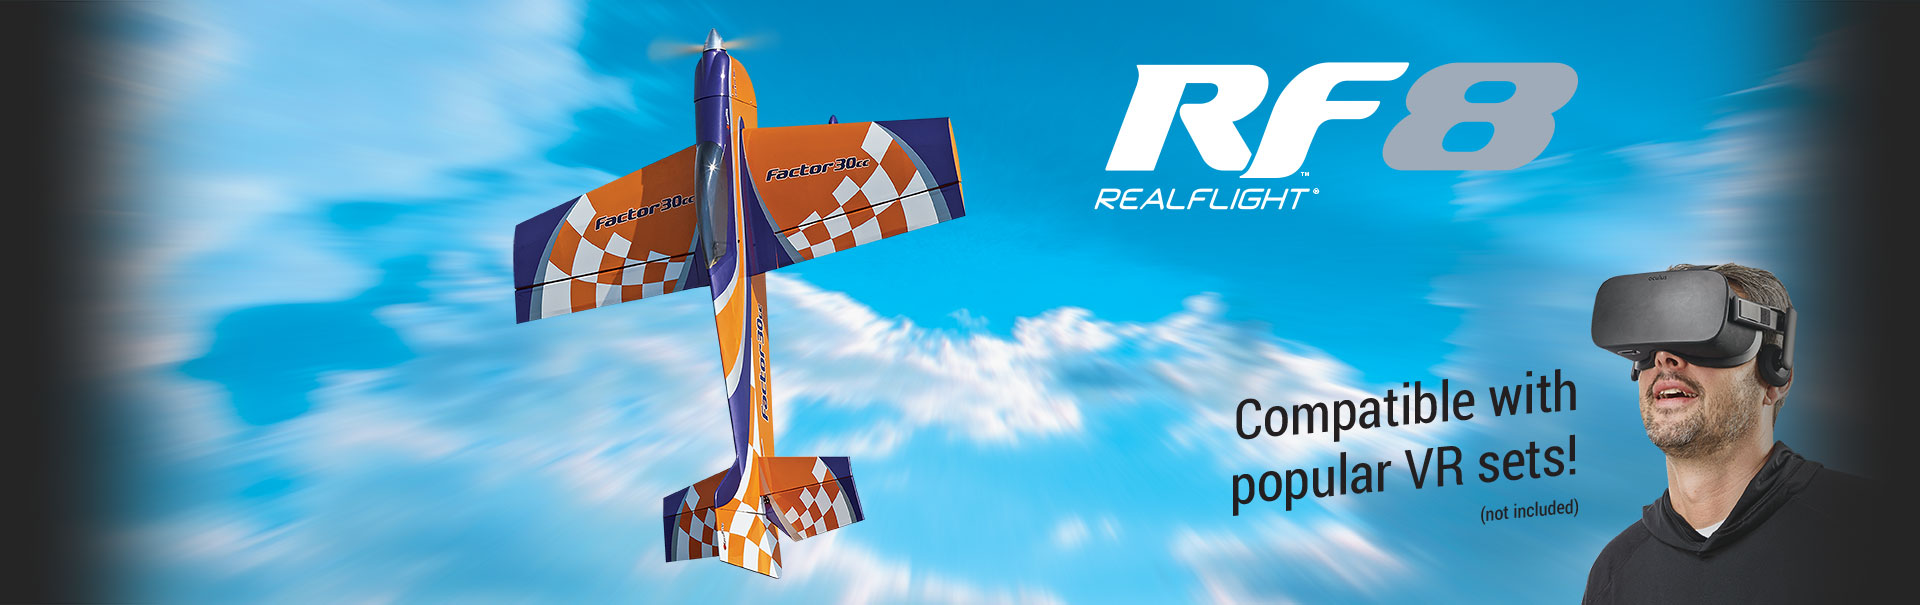 RF8 RealFlight Compatible with popular VR Sets (not included)